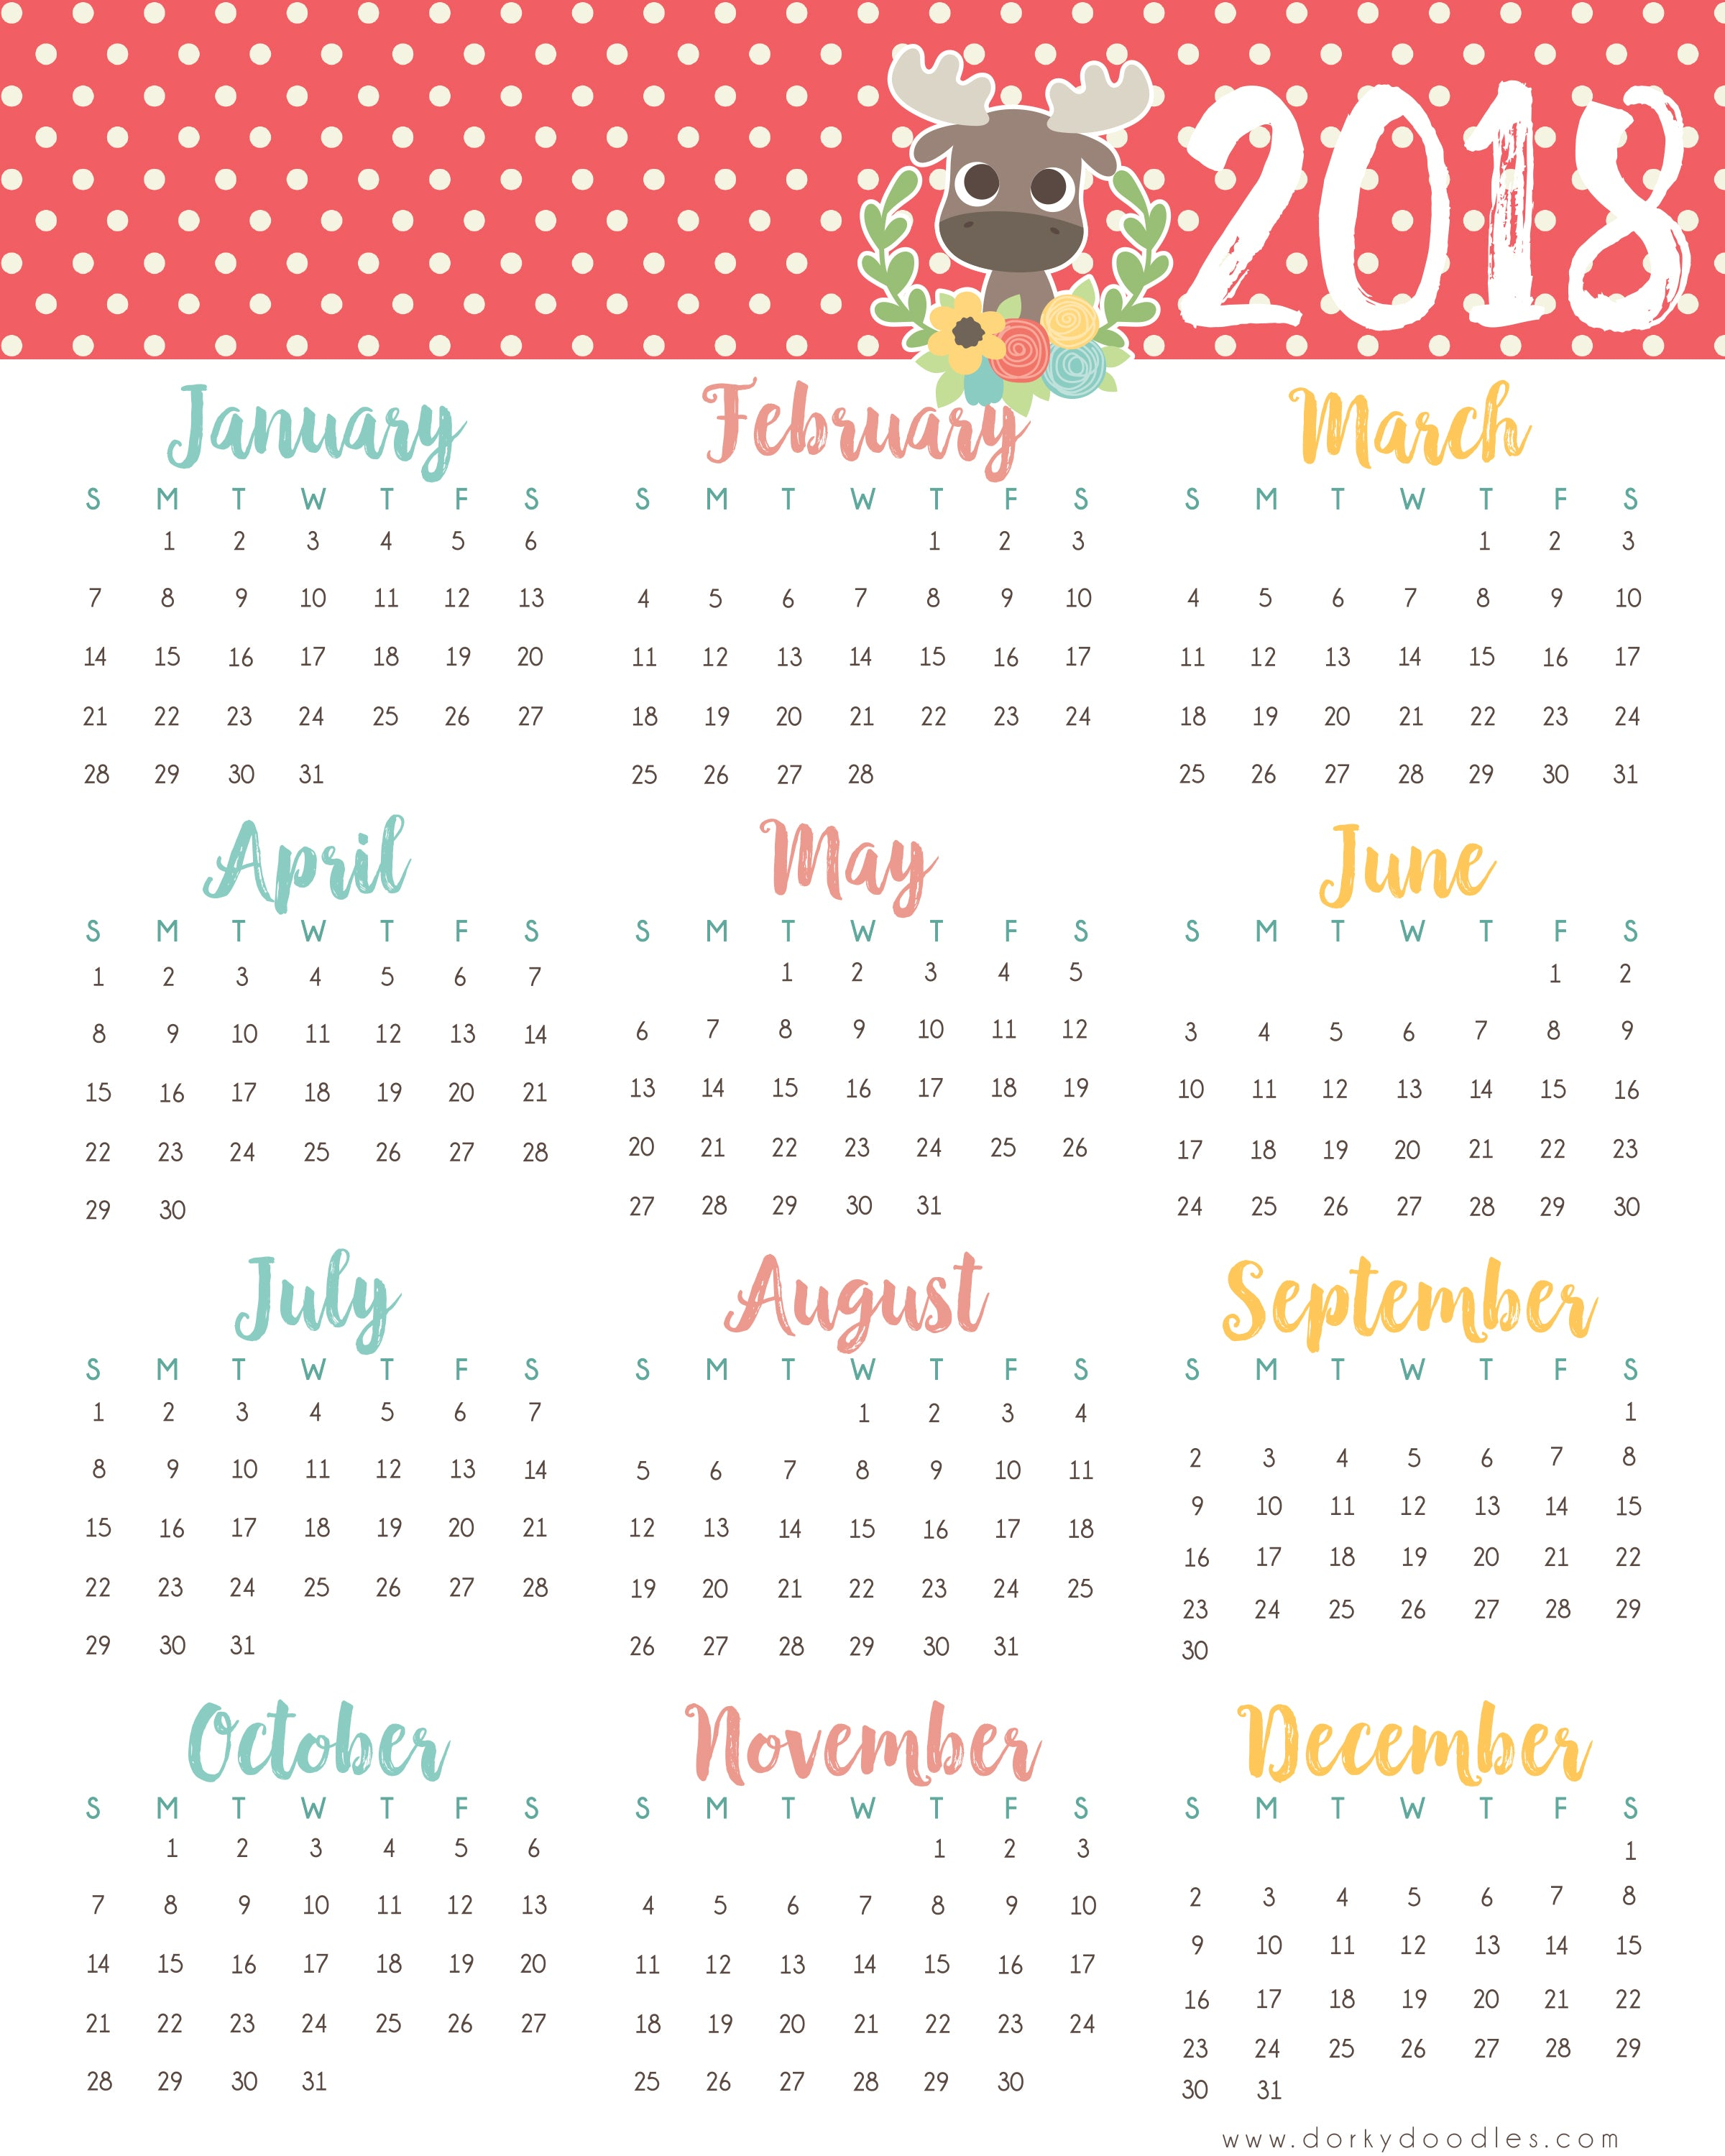 A year at a glance printable 2018 calendar dorky doodles if you love the little moose on this calendar and want to do more with our baby woodland animal clipart you can get it in our shop solutioingenieria Choice Image